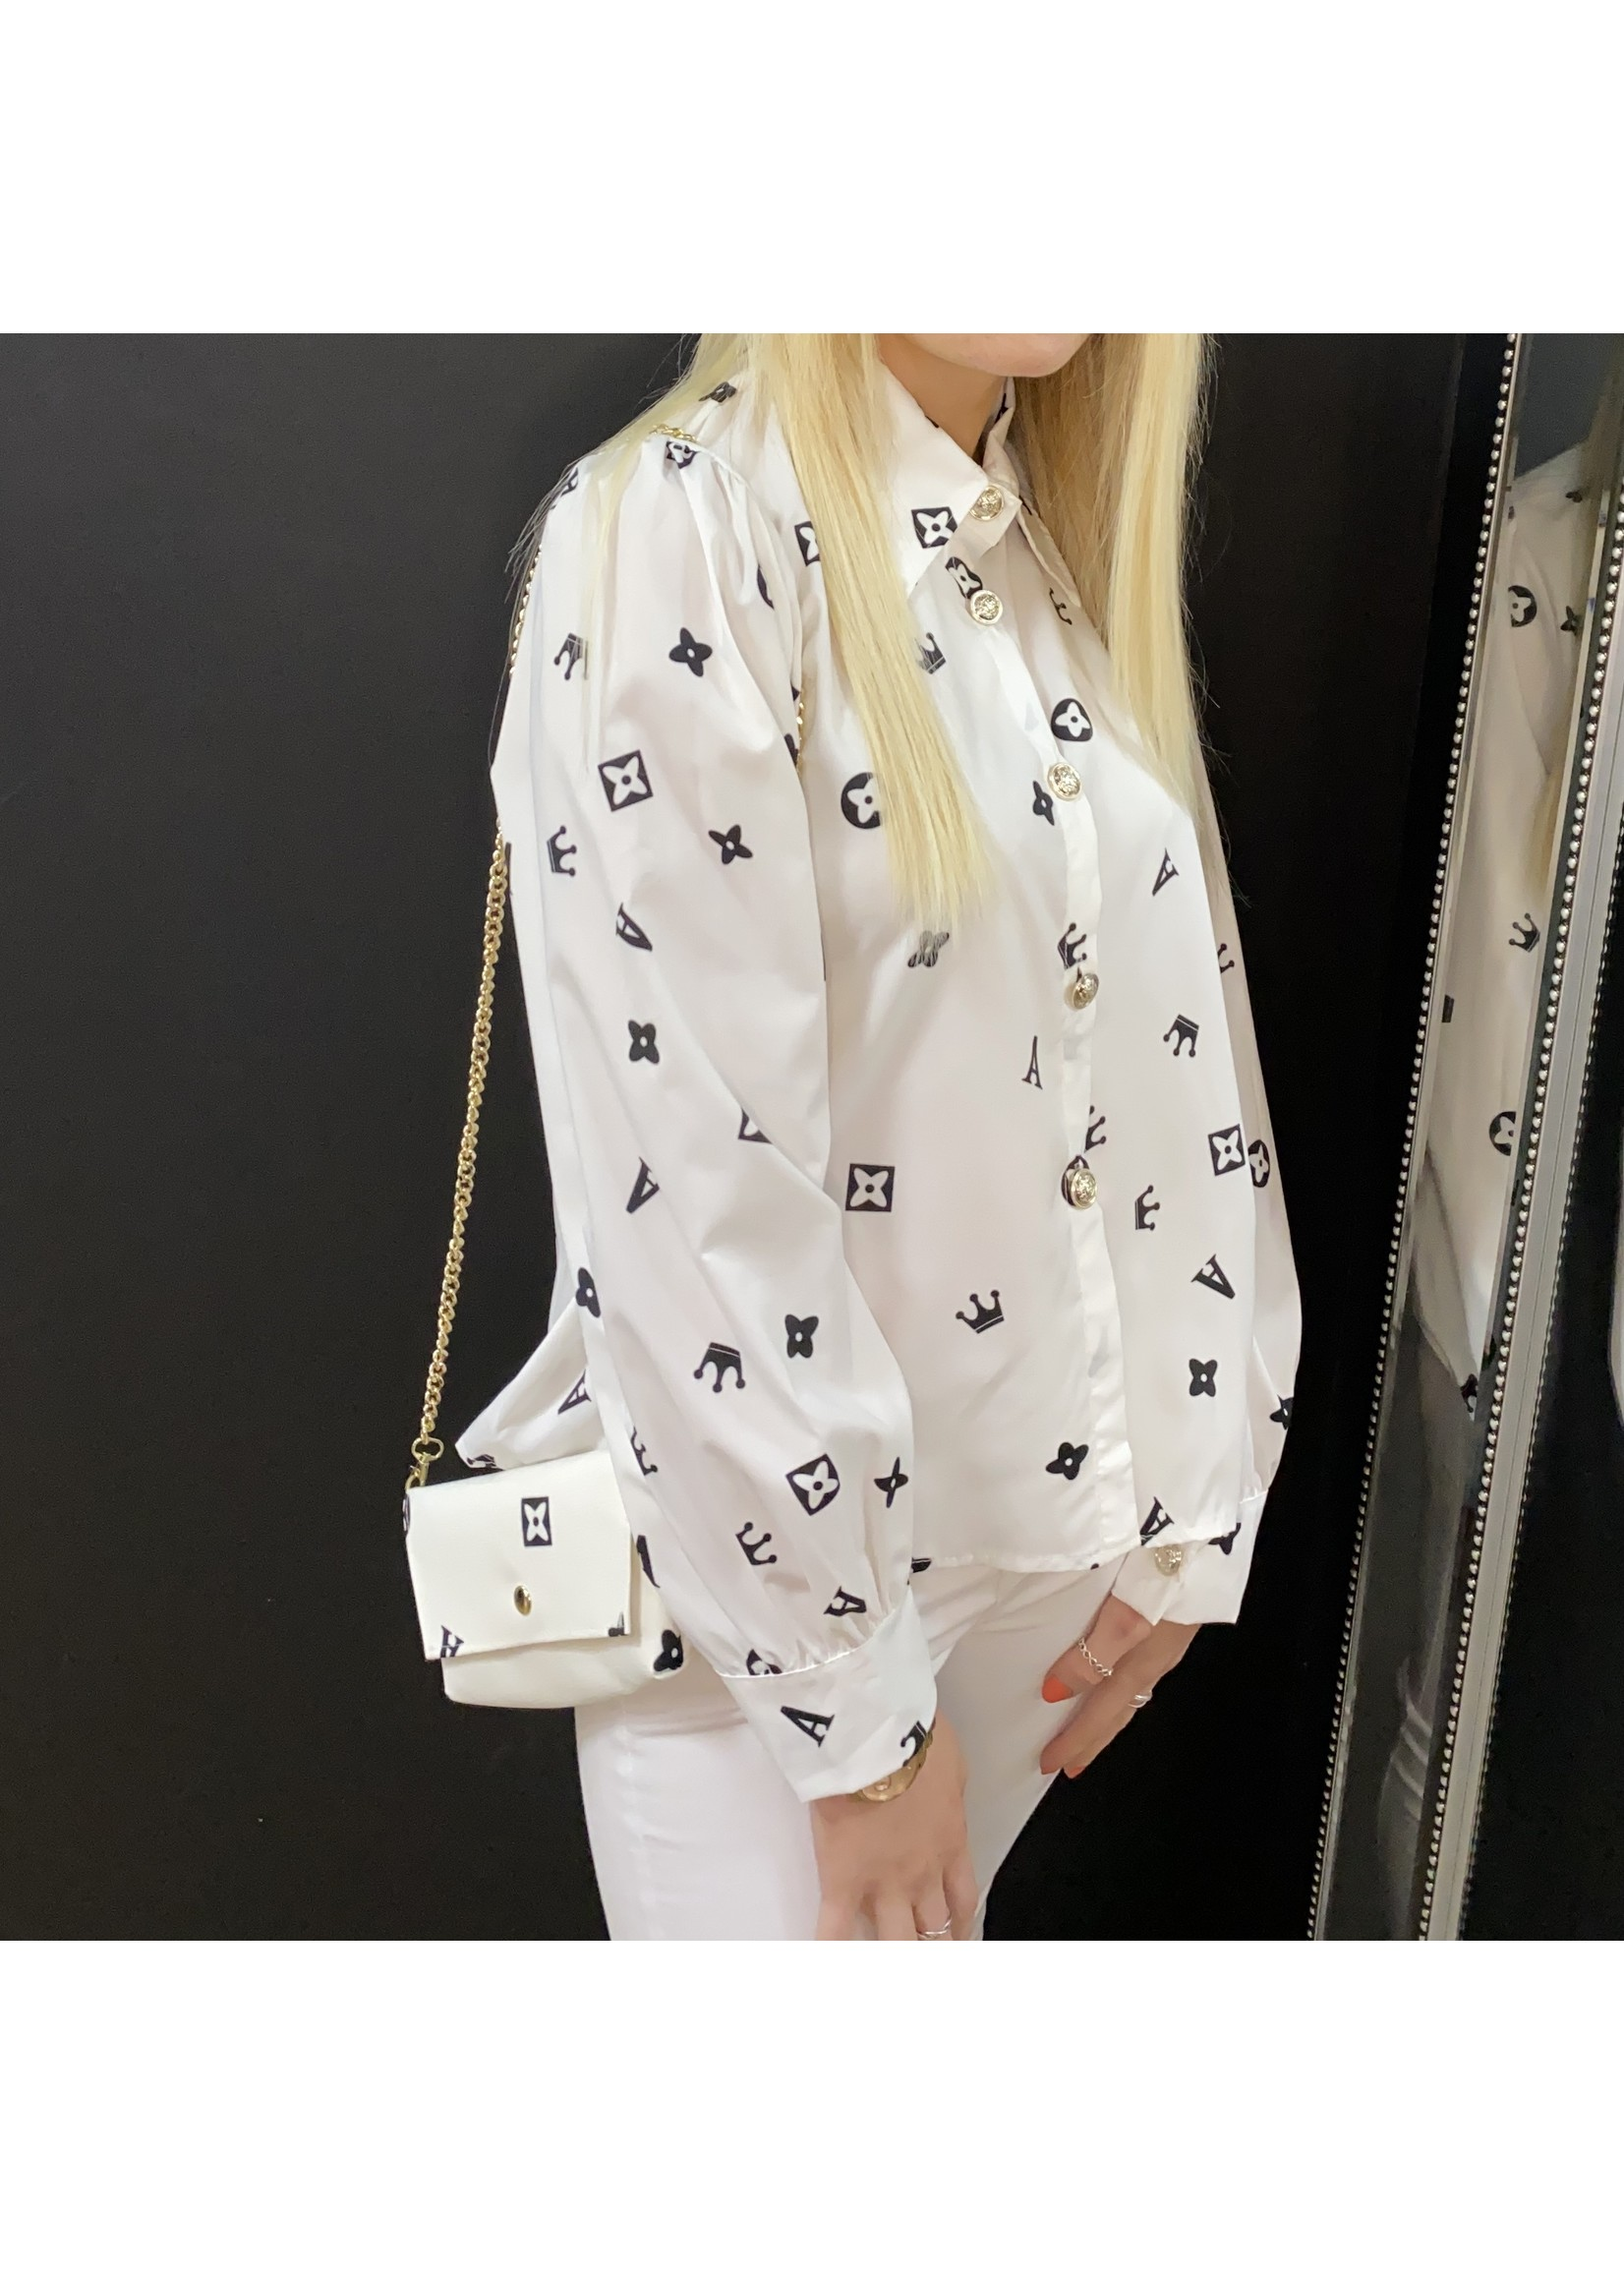 Eloise shirt with matching bag